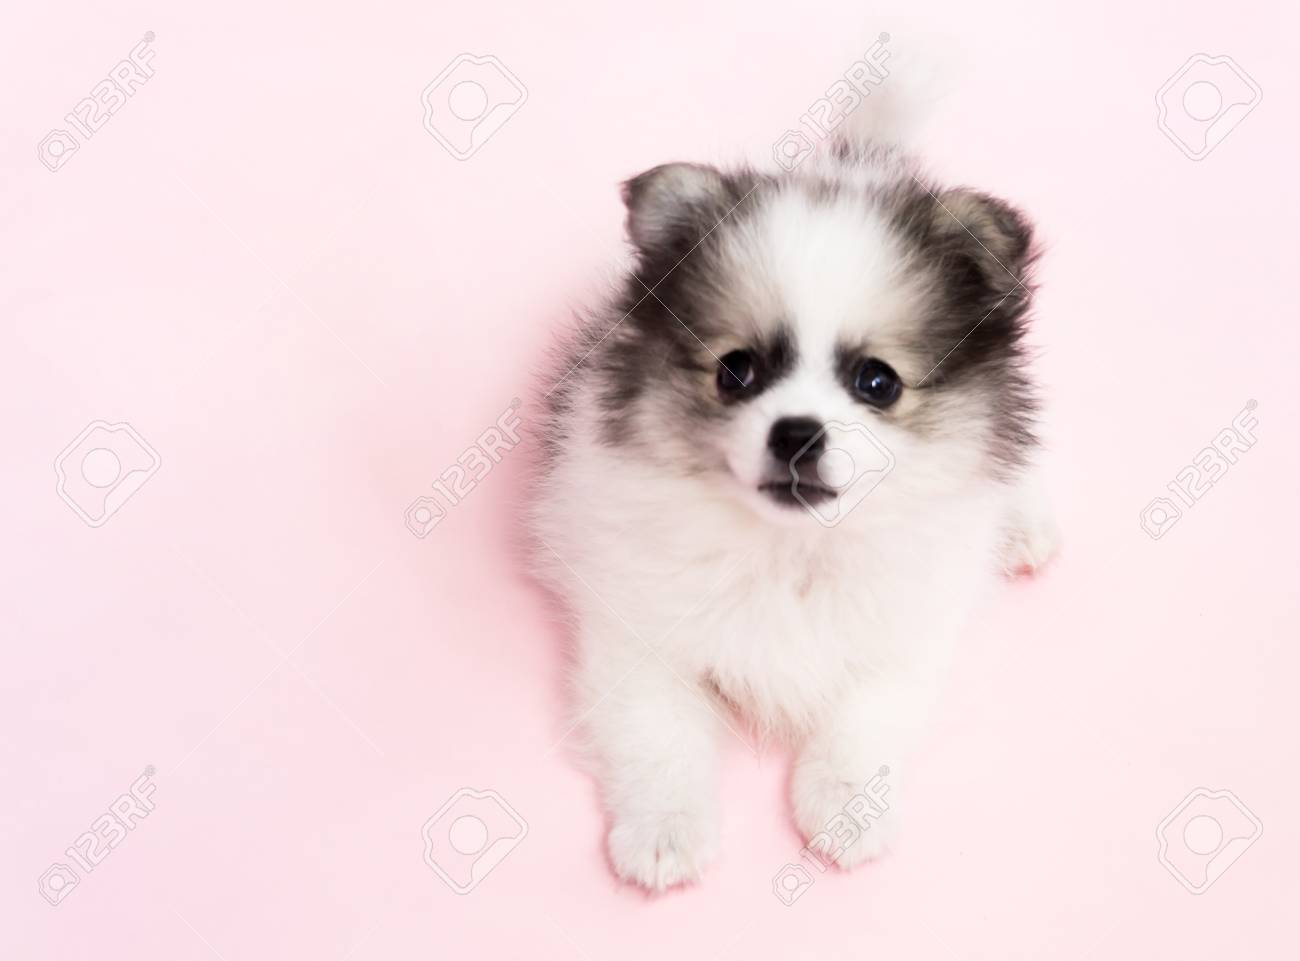 Cute Baby Pomeranian Dog On Pink Background For Pet Health Care